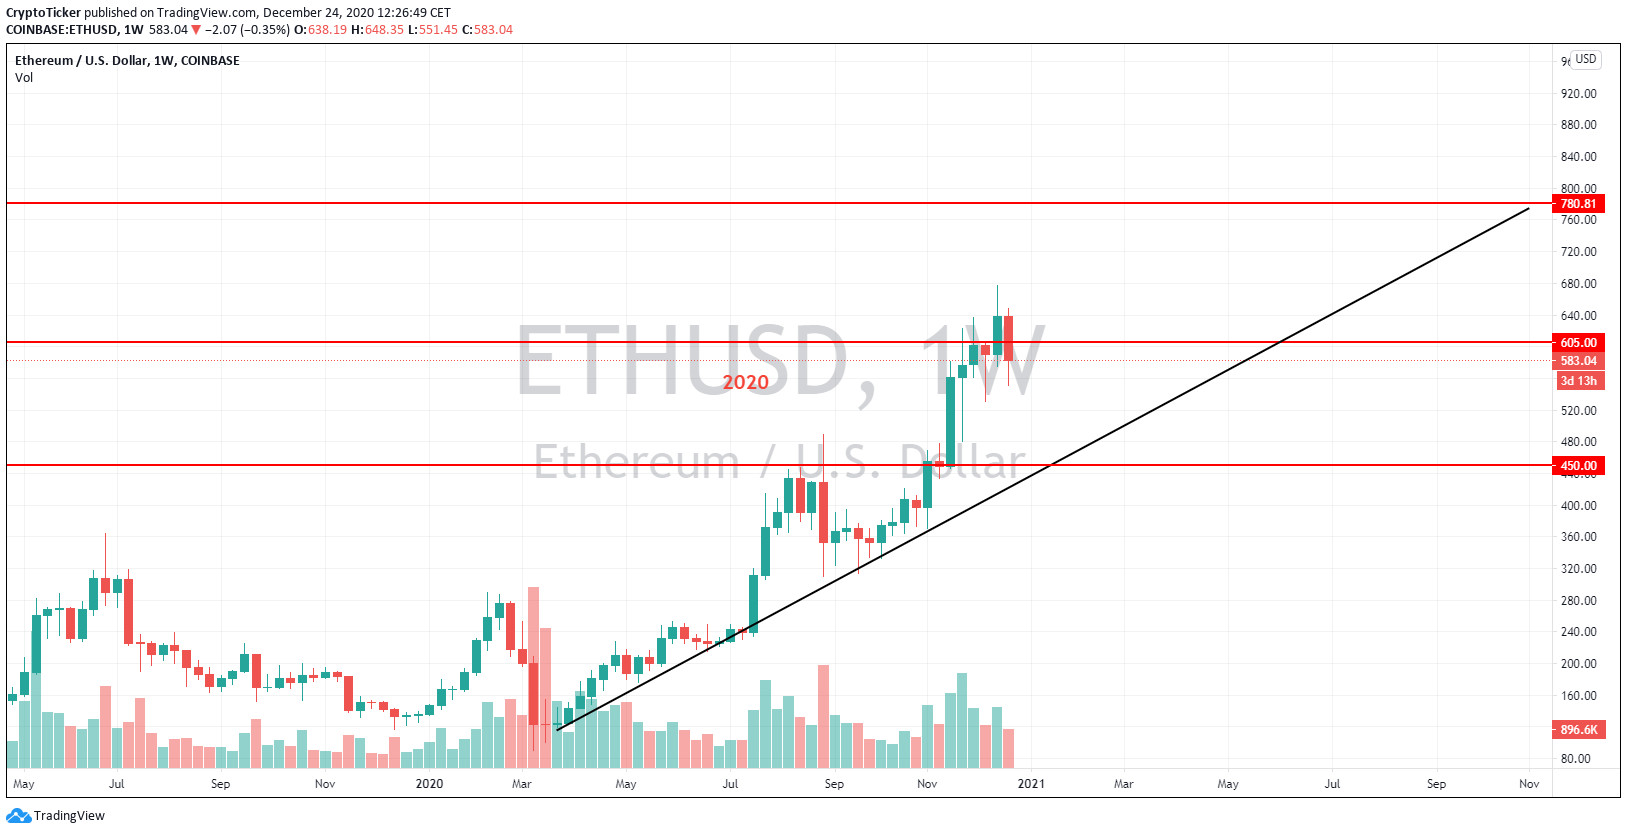 ETH/USD 1-Week chart, Ether price increase in 2020